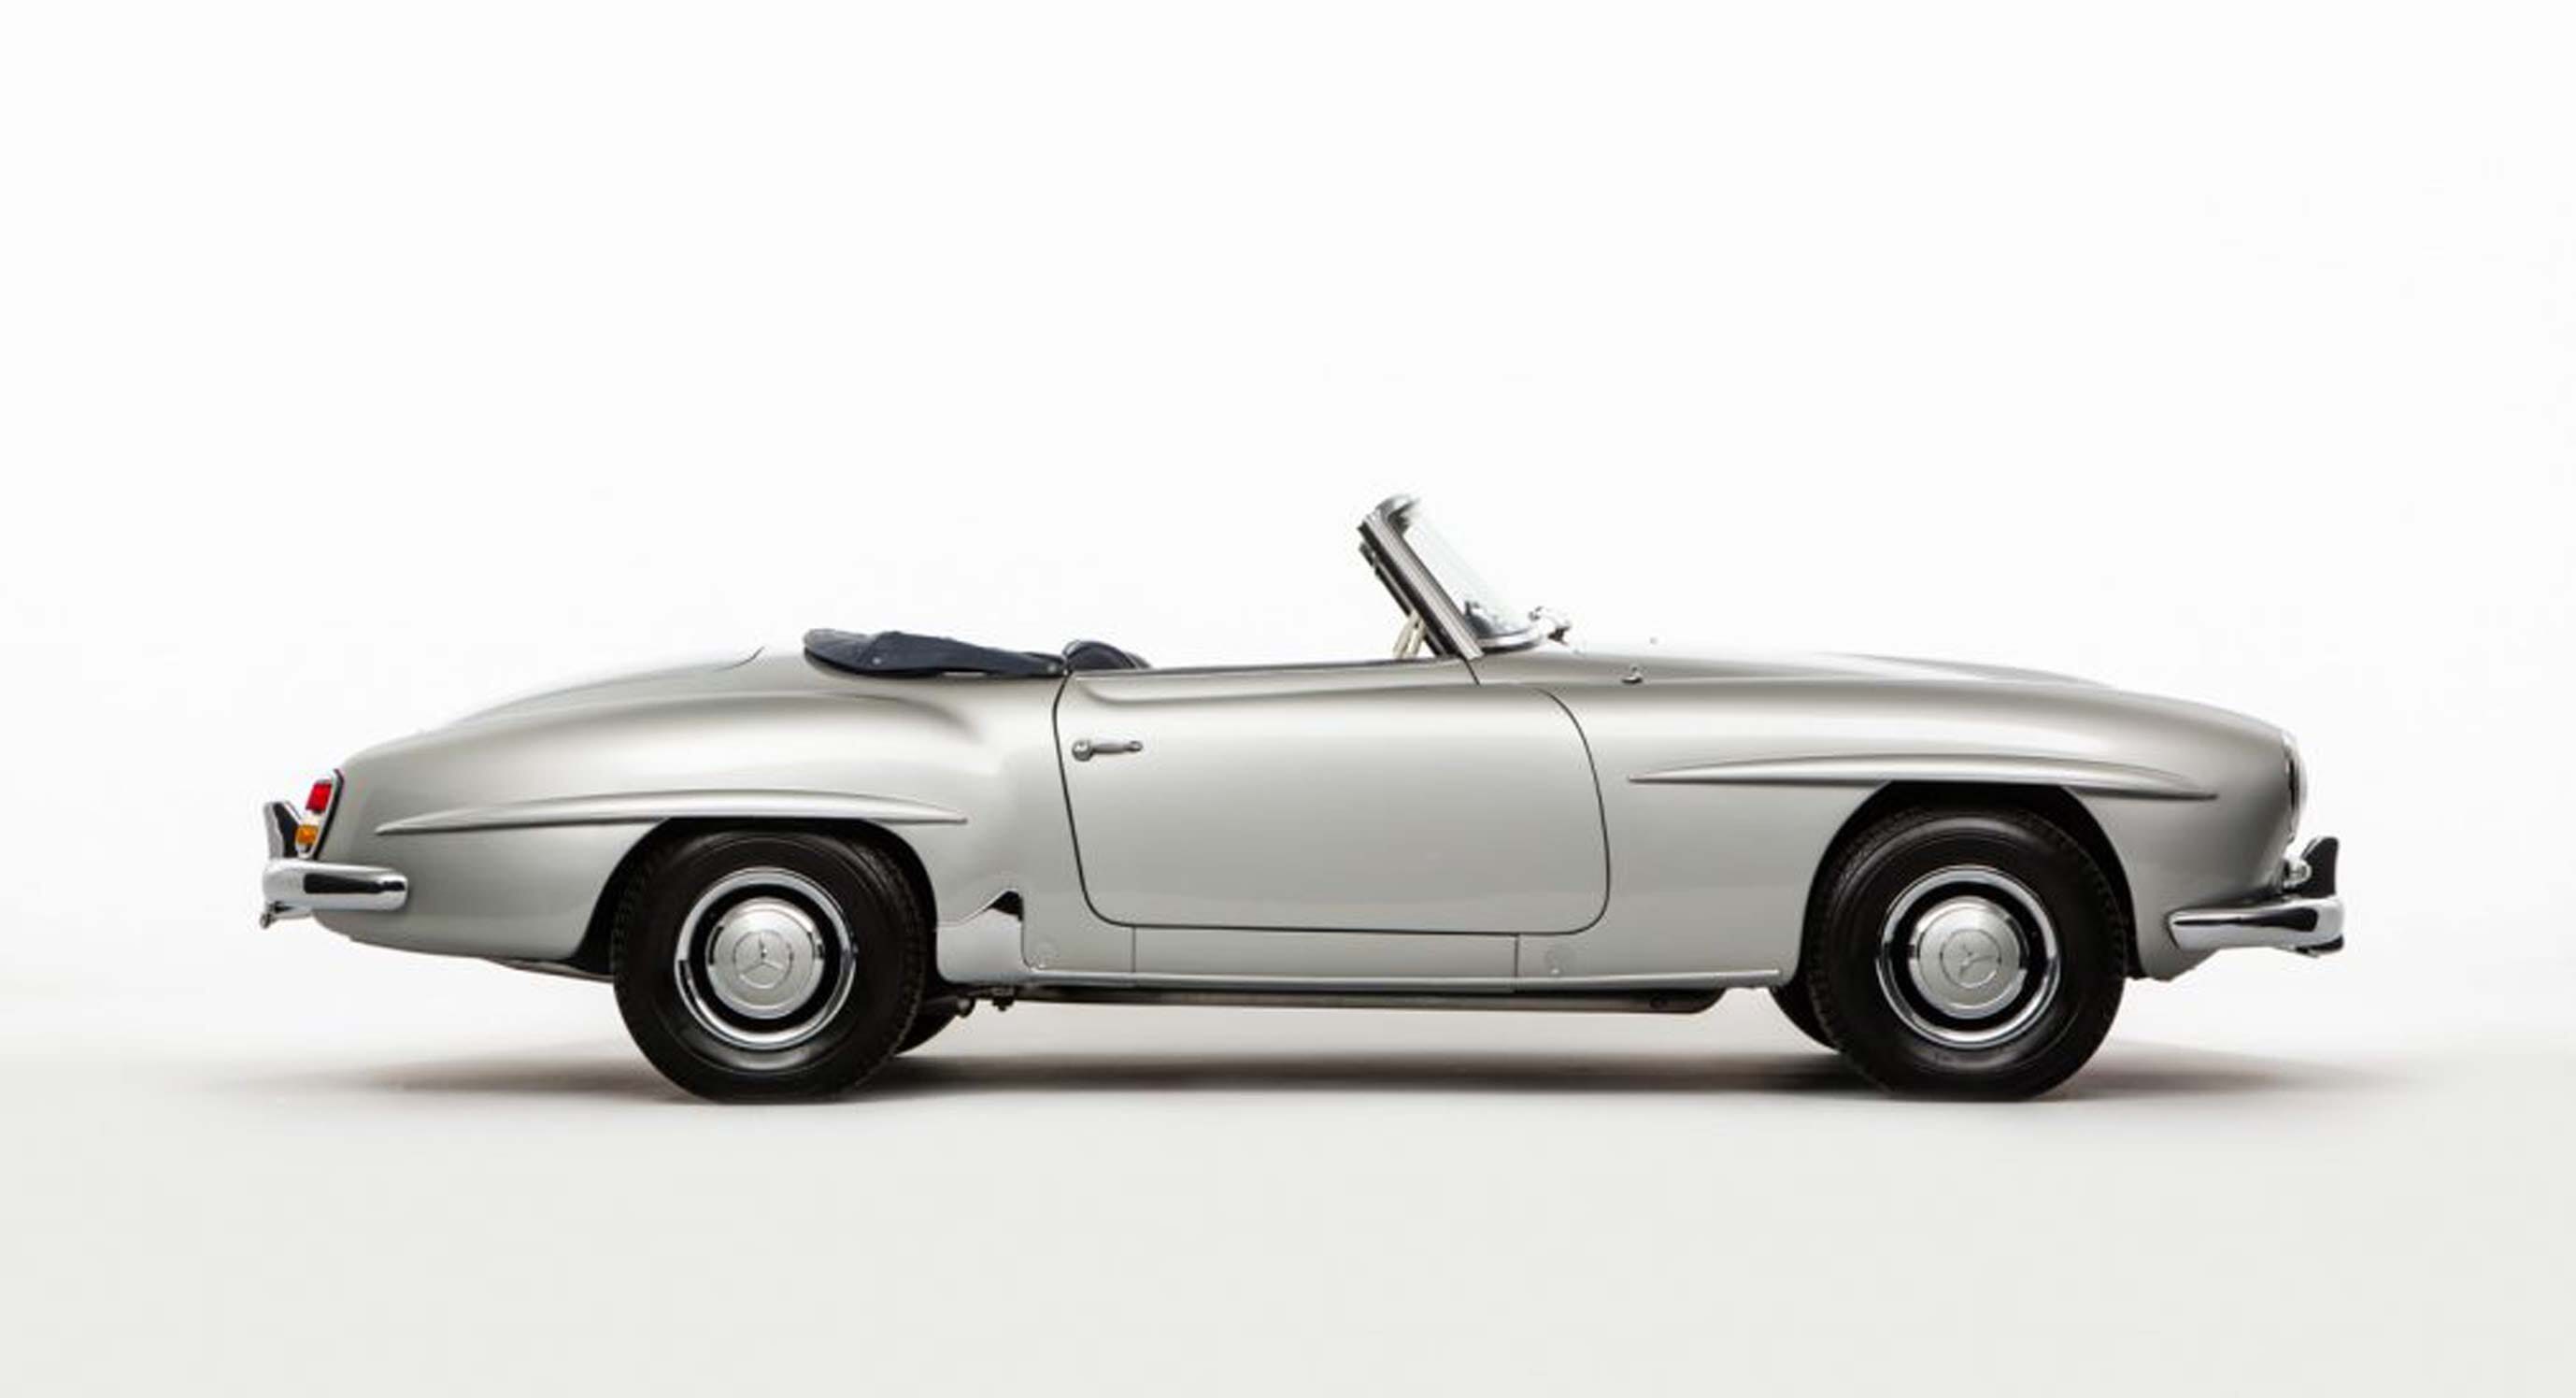 This 1962 Mercedes-Benz 190SL Is A Luxury Roadster In Prime Condition